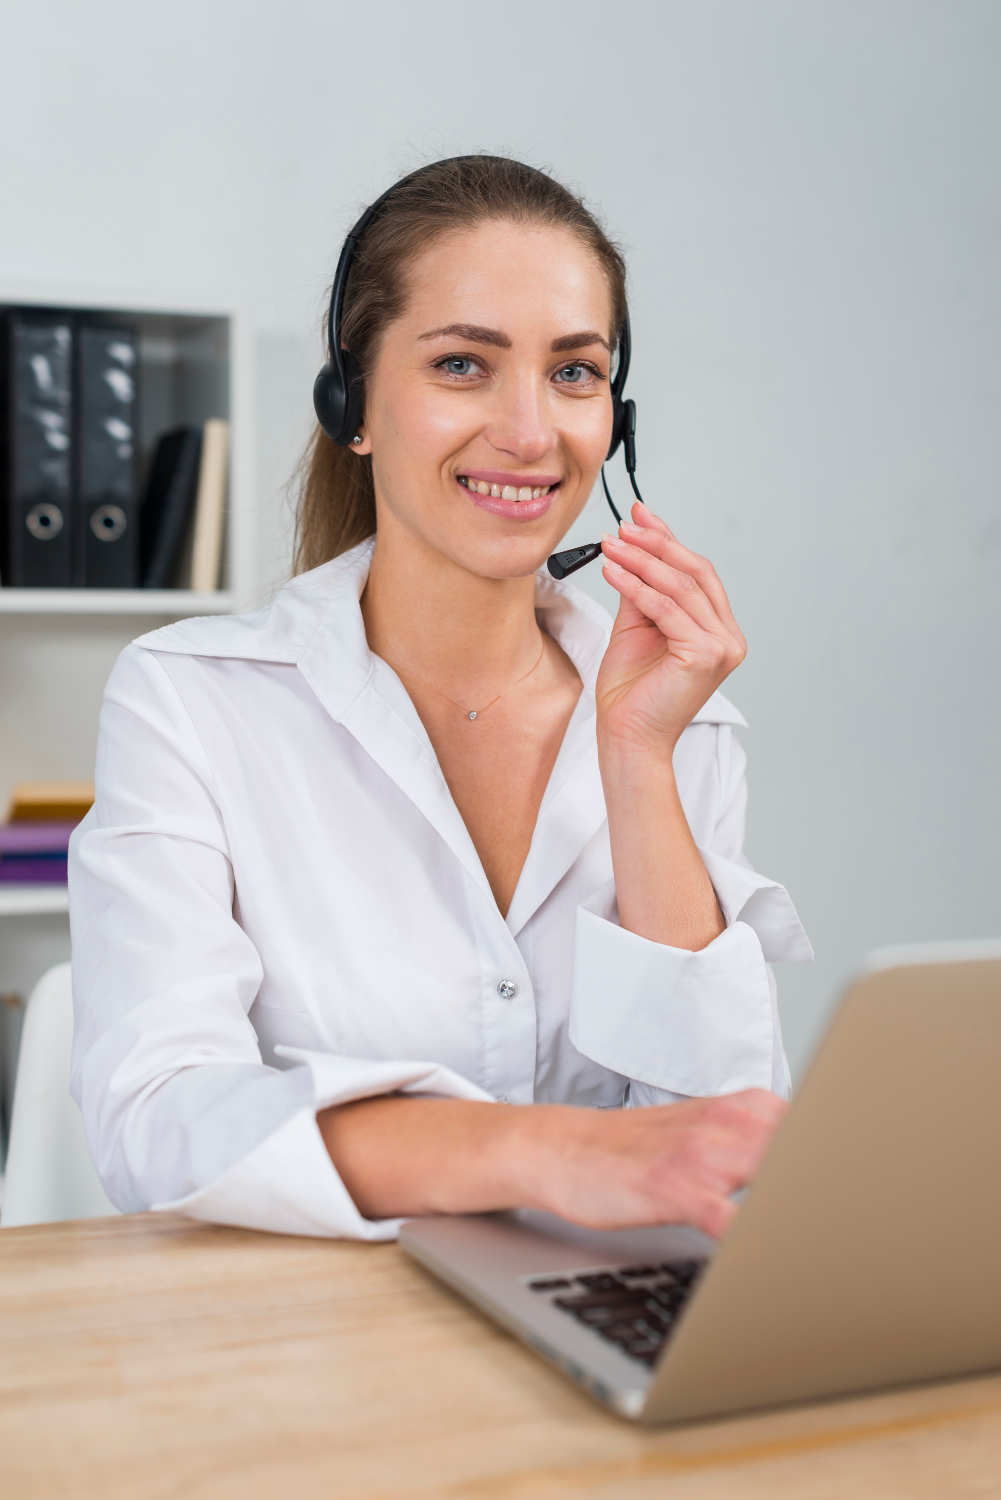 woman-working-call-center